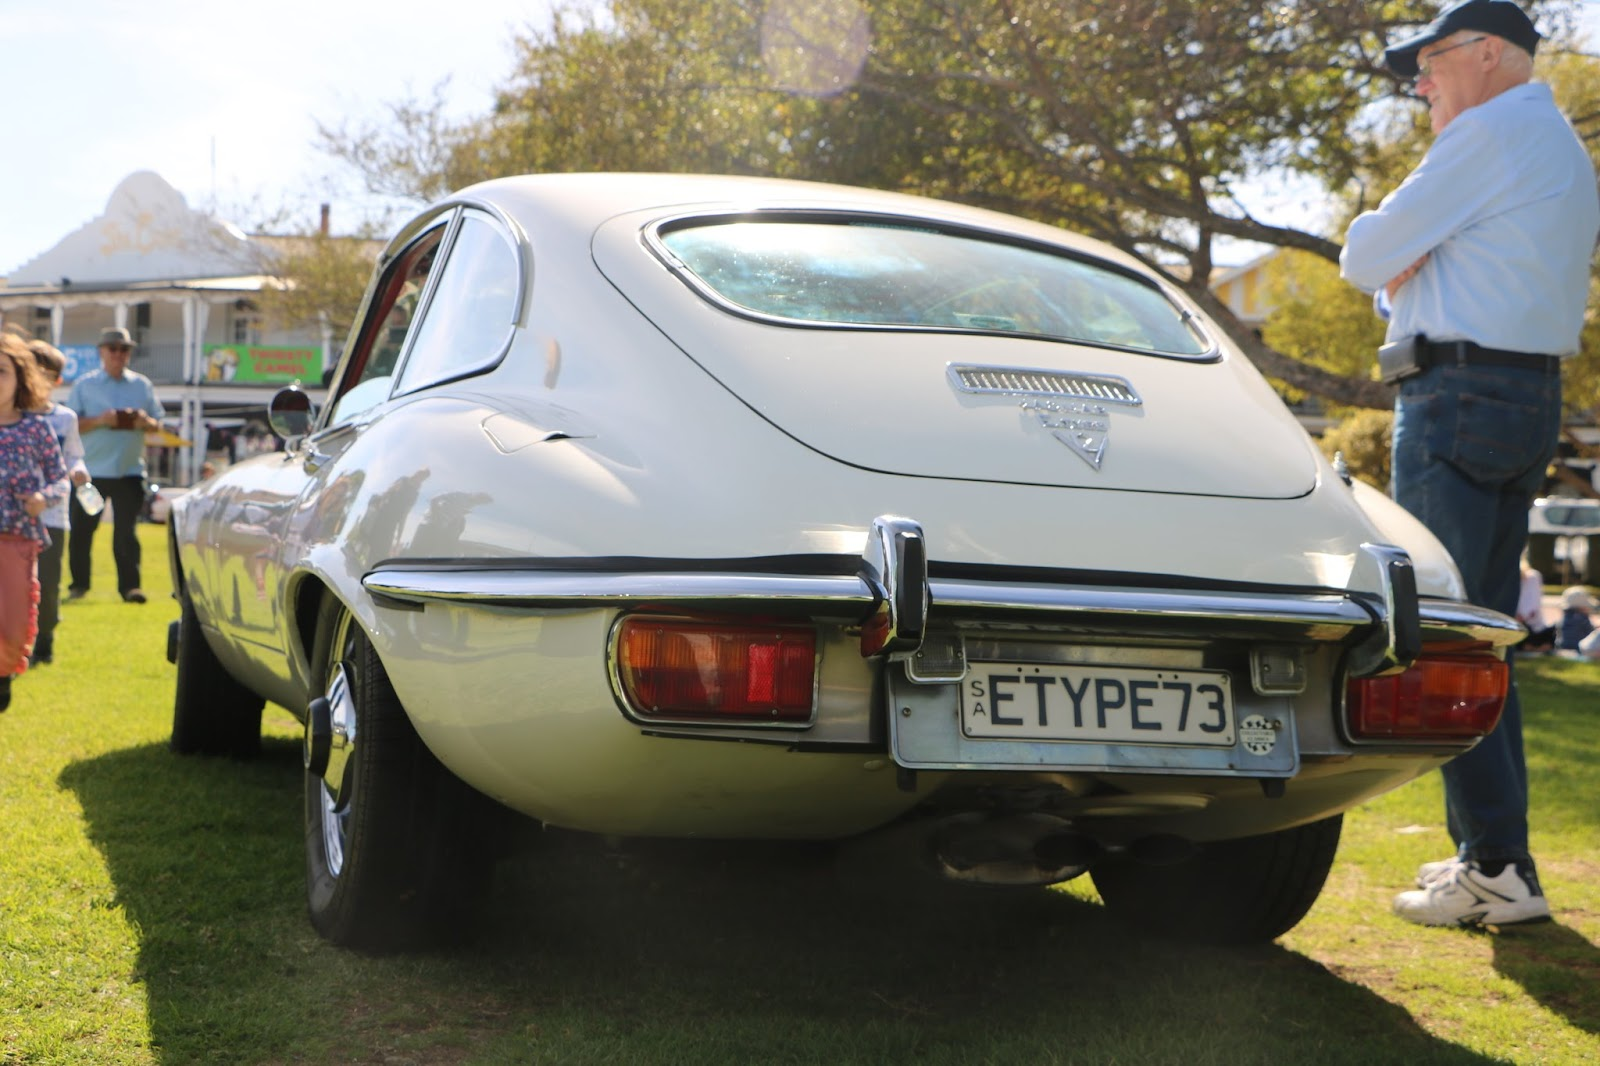 Jaguar E-Type Mk3 V12 - British_Classic_Tour_6_May_2018_0026.JPG